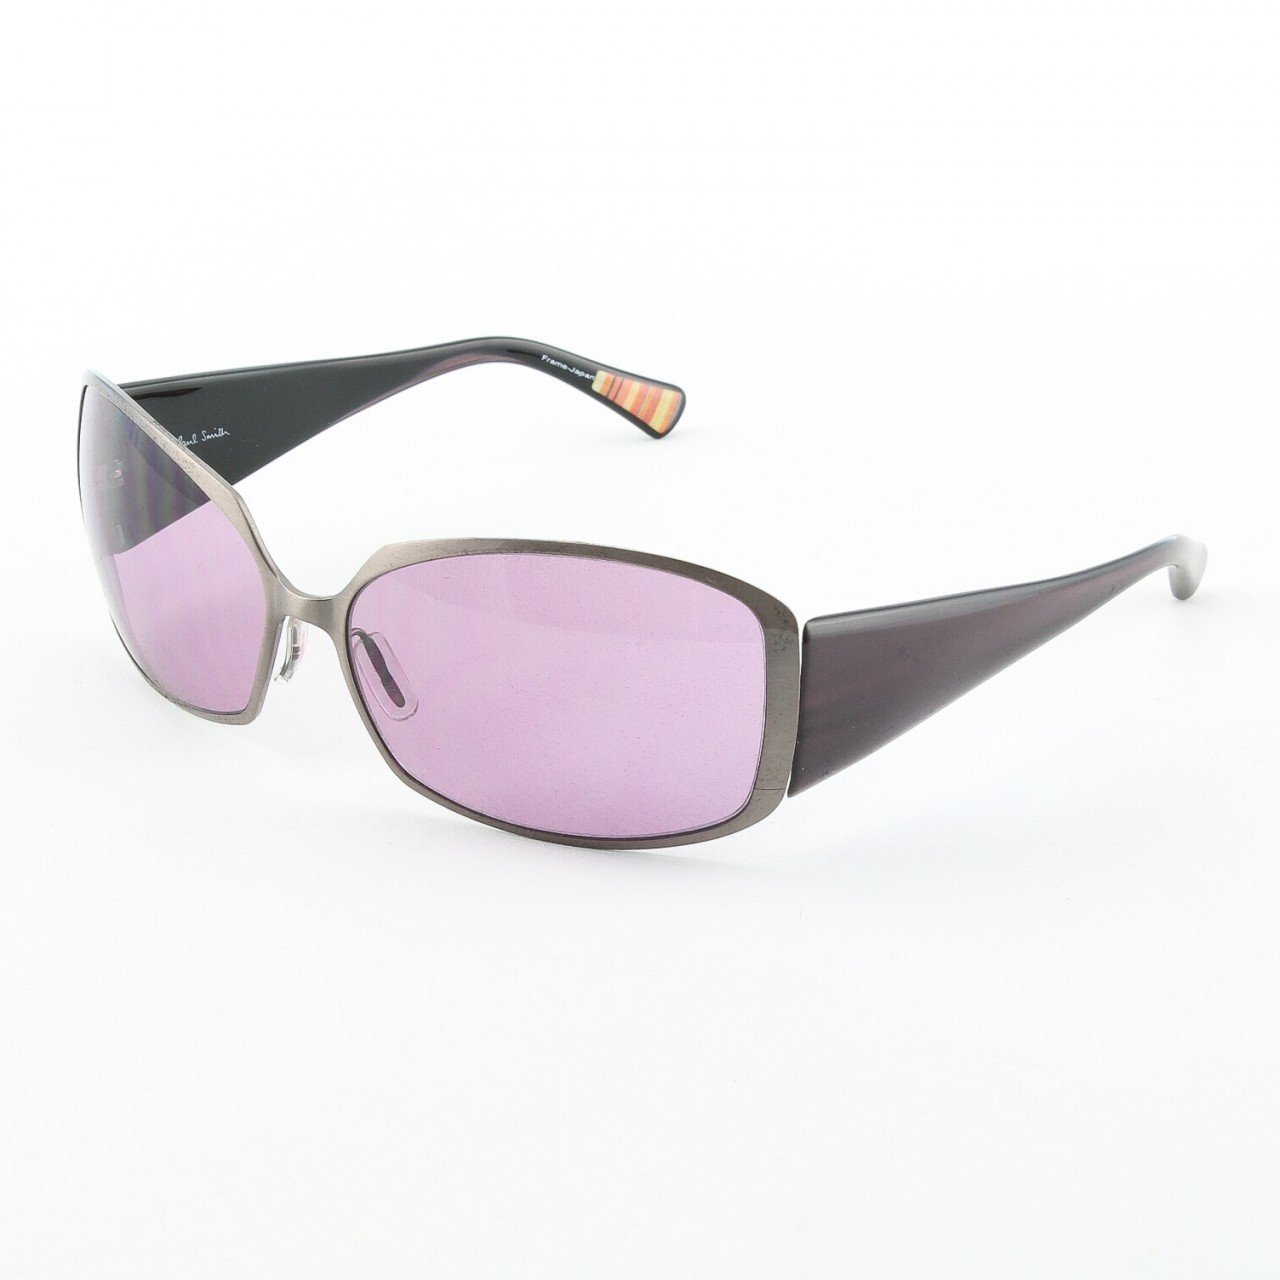 Paul Smith PS-810 MD Sunglasses Color Bronze Purple with Purple Lenses 62mm